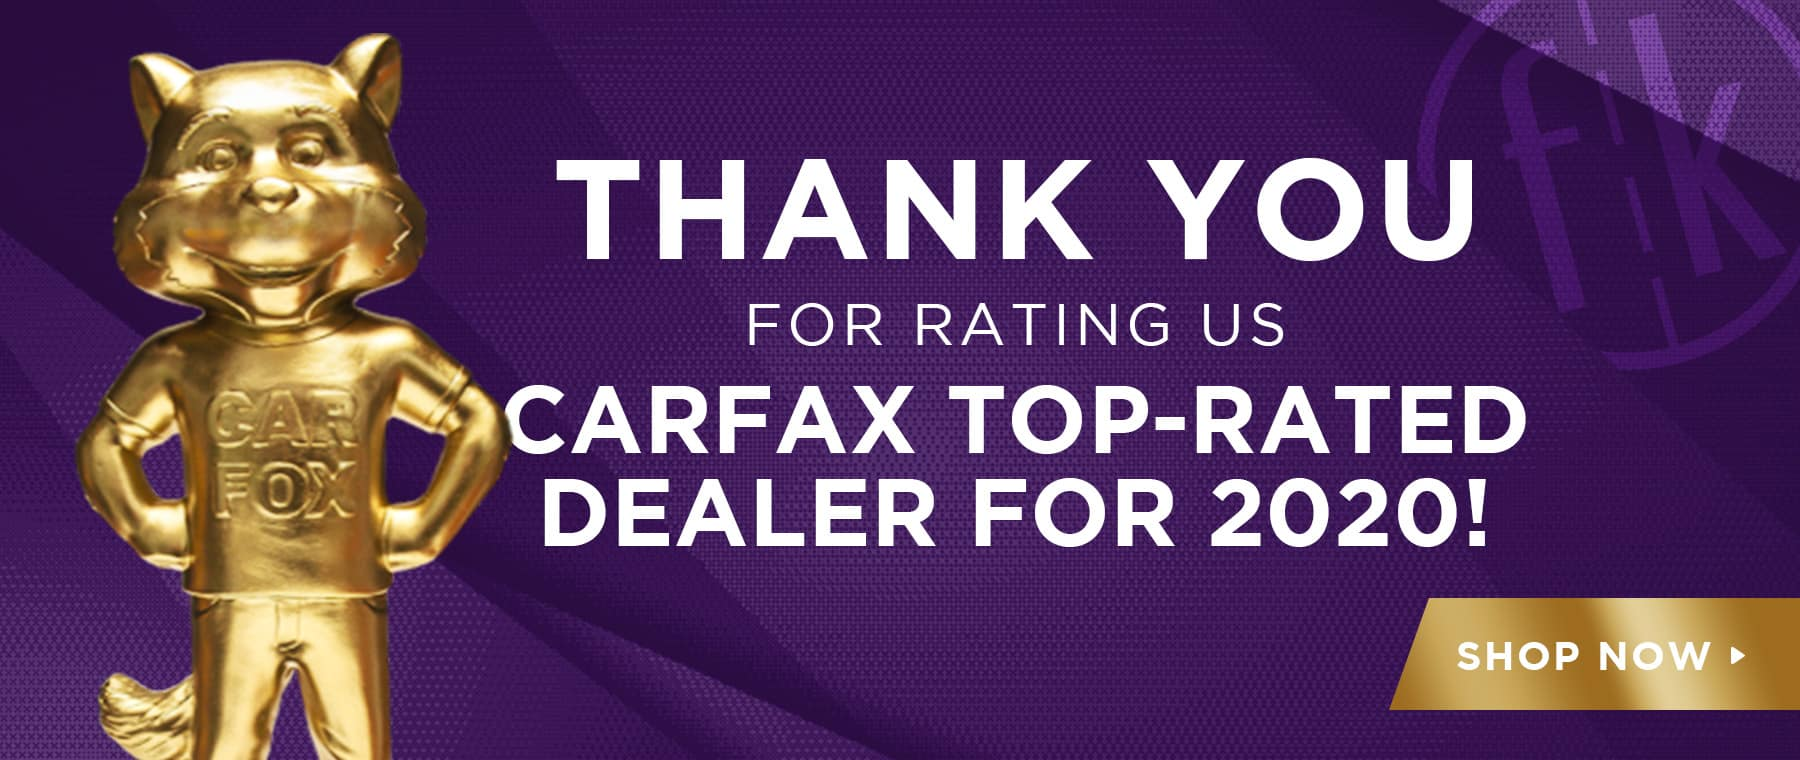 Thank You For Rating Us CARFAX Top-Rated Dealer for 2020!